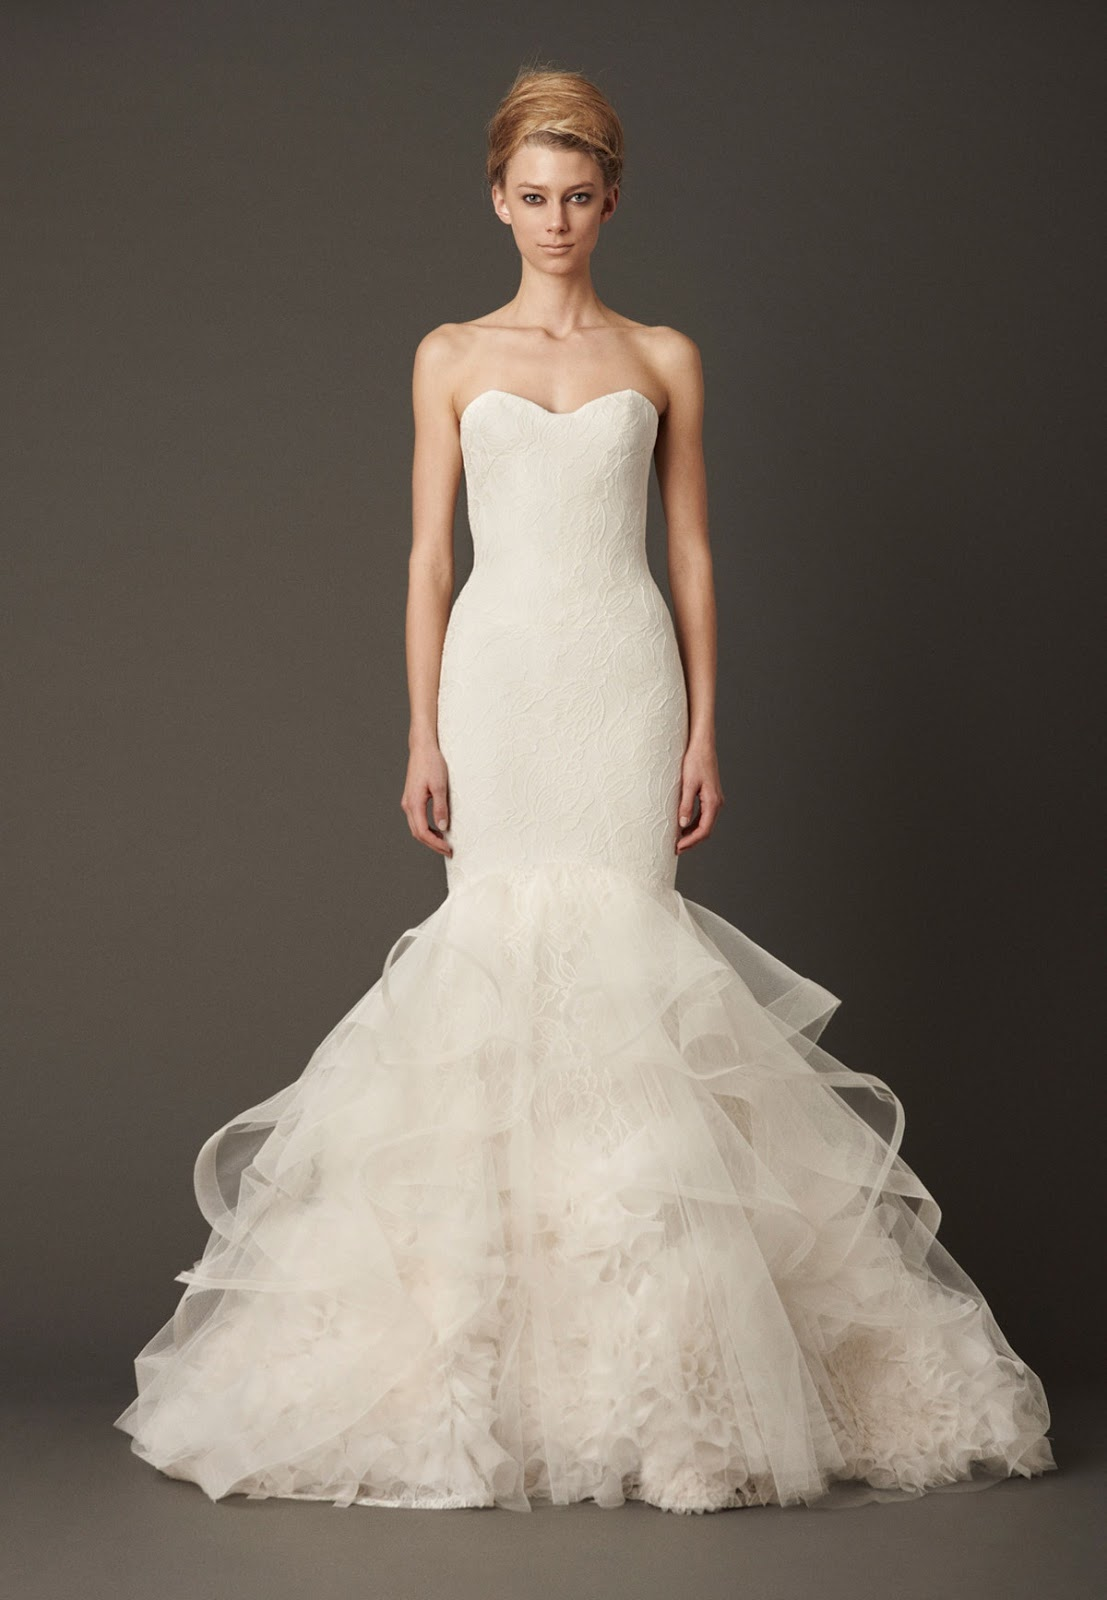 Vera wang 2013 fall bridal collection for Vera wang used wedding dress